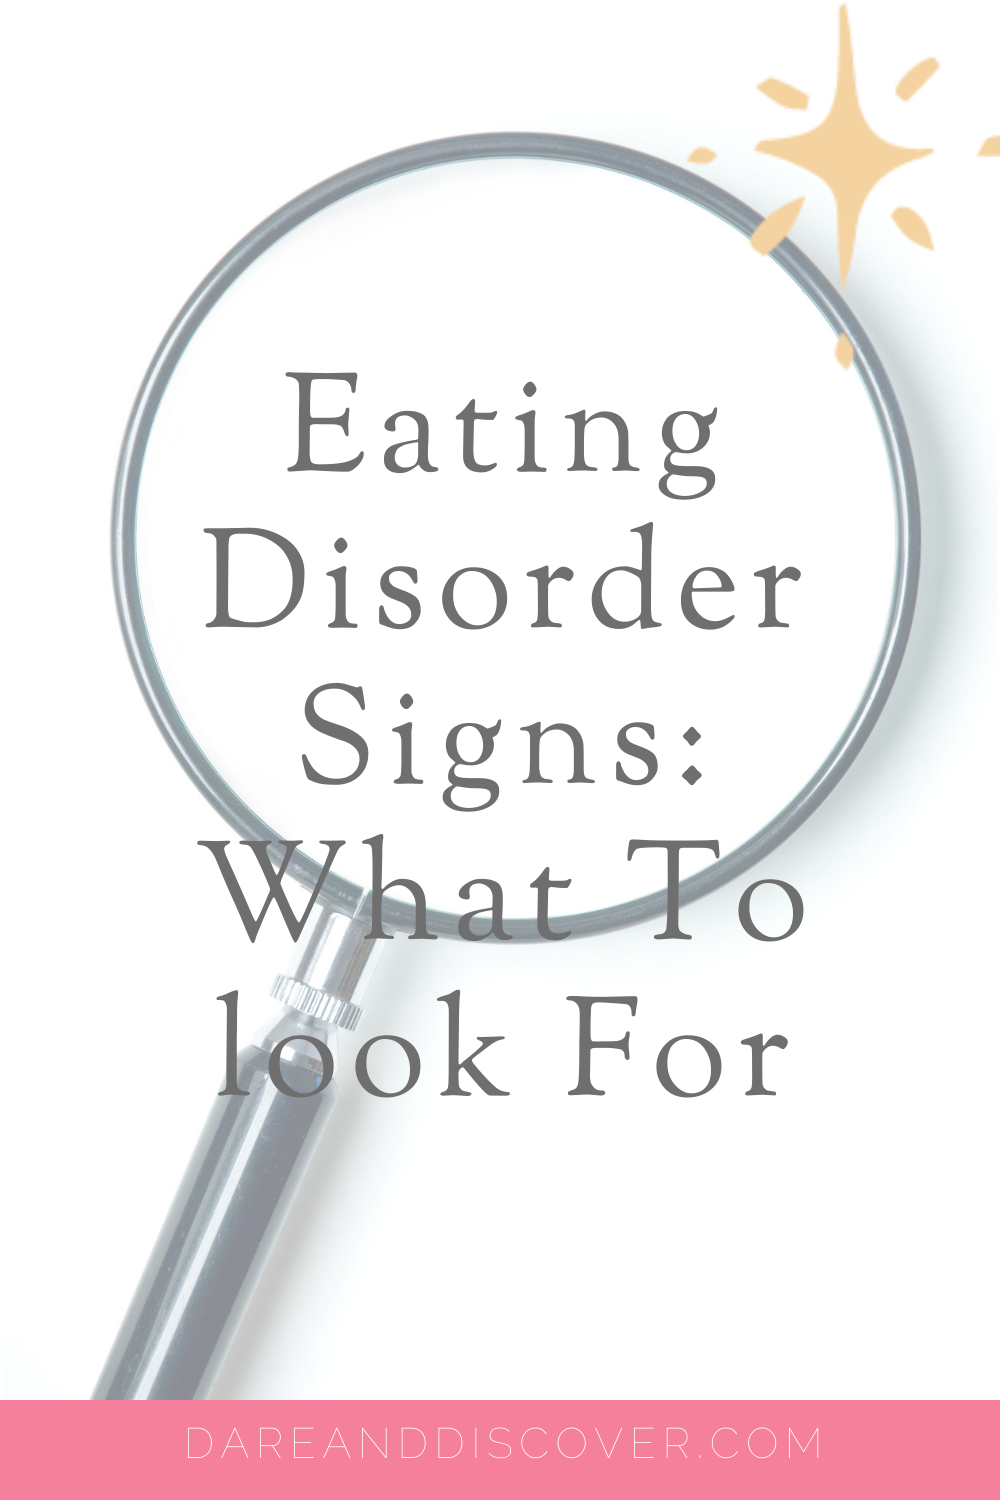 If you're worried about yourself, or someone you know, with regards to eating disorders then here are the commons signs for Anorexia Nervosa, Bulimia Nervosa, and Binge Eating Disorder. The signs and symptoms of eating disorders might not always be obvious, and it's always better to seek the guidance and advice from a medical and/or mental health professional   Anorexia Signs   Bulimia Signs   Binge Eating Disorder Signs   #EatingDisorders #EatingDisorderSignsAndSymptoms